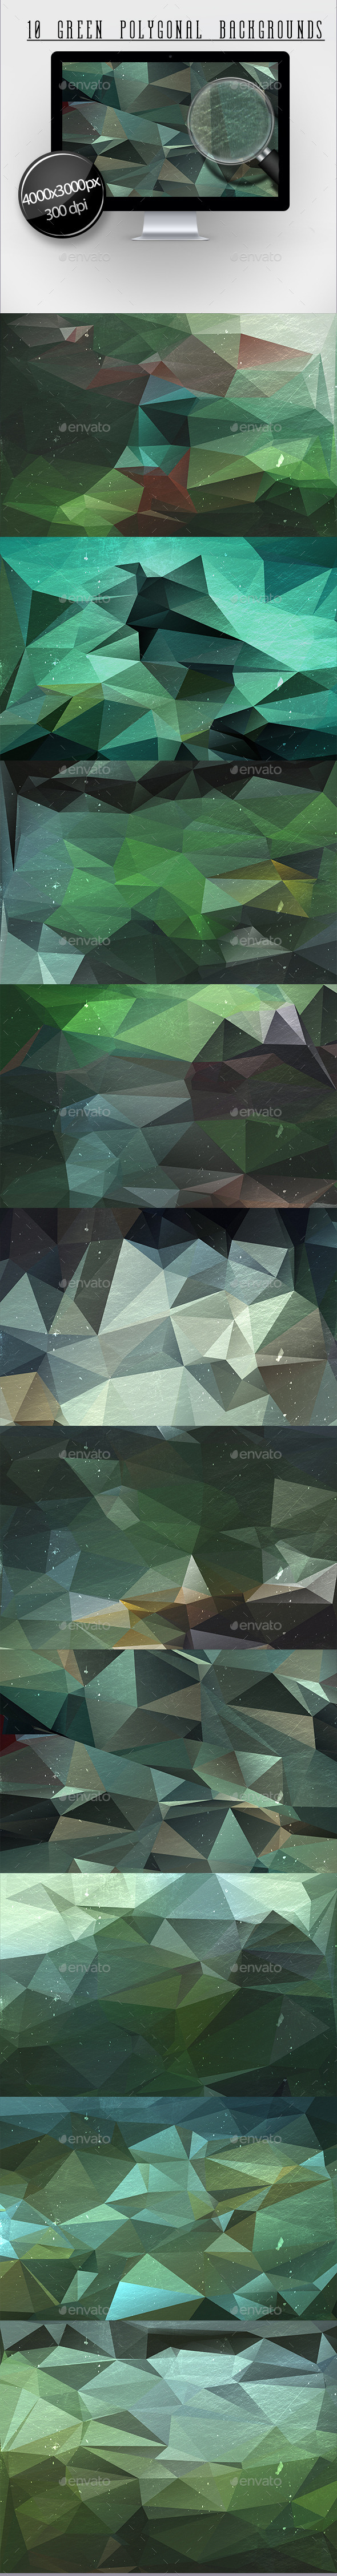 10 Green Polygonal Backgrounds - Backgrounds Graphics